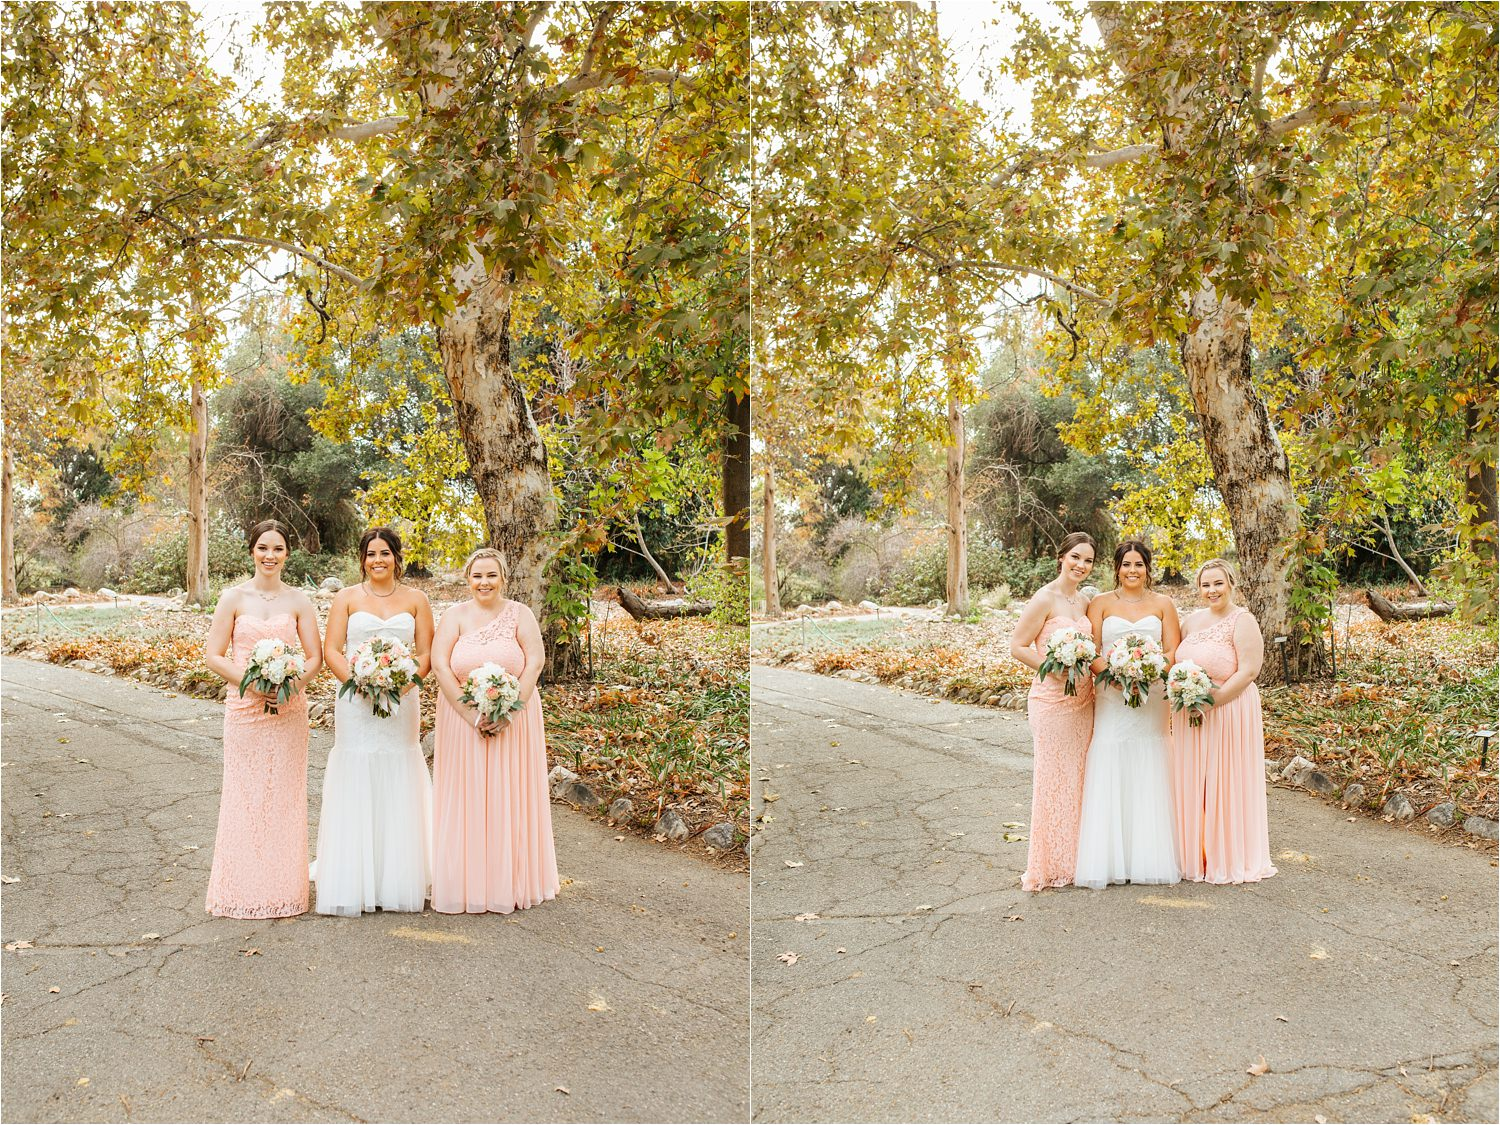 Fall Wedding Photos - Bride and Bridesmaids Photos in Claremont, CA - http://brittneyhannonphotography.com